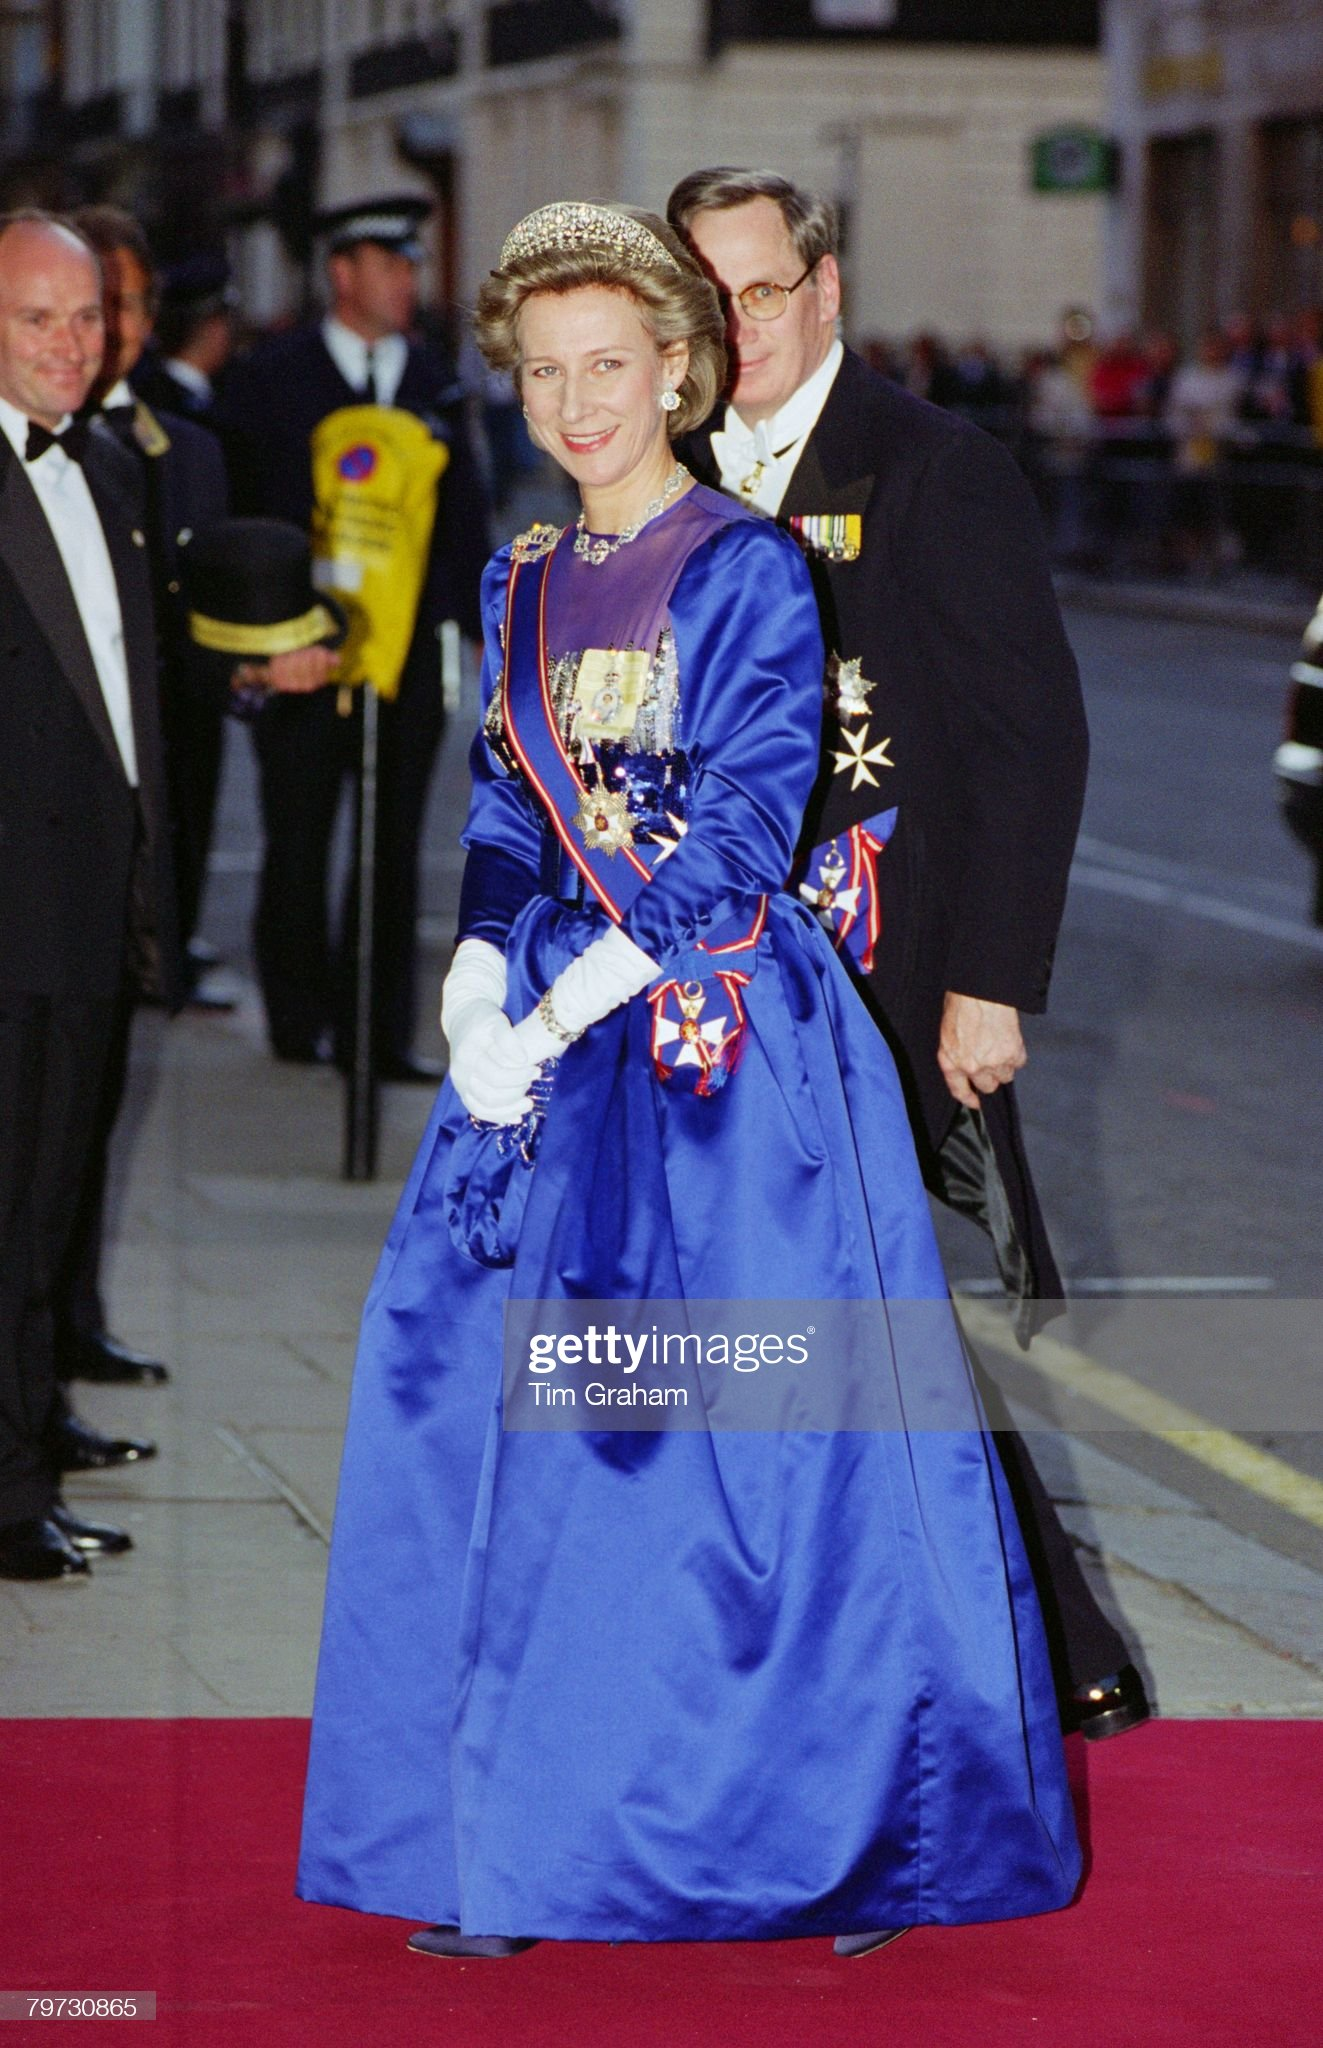 The Duke and Duchess of Gloucester arrive for The Amir of Ku : News Photo